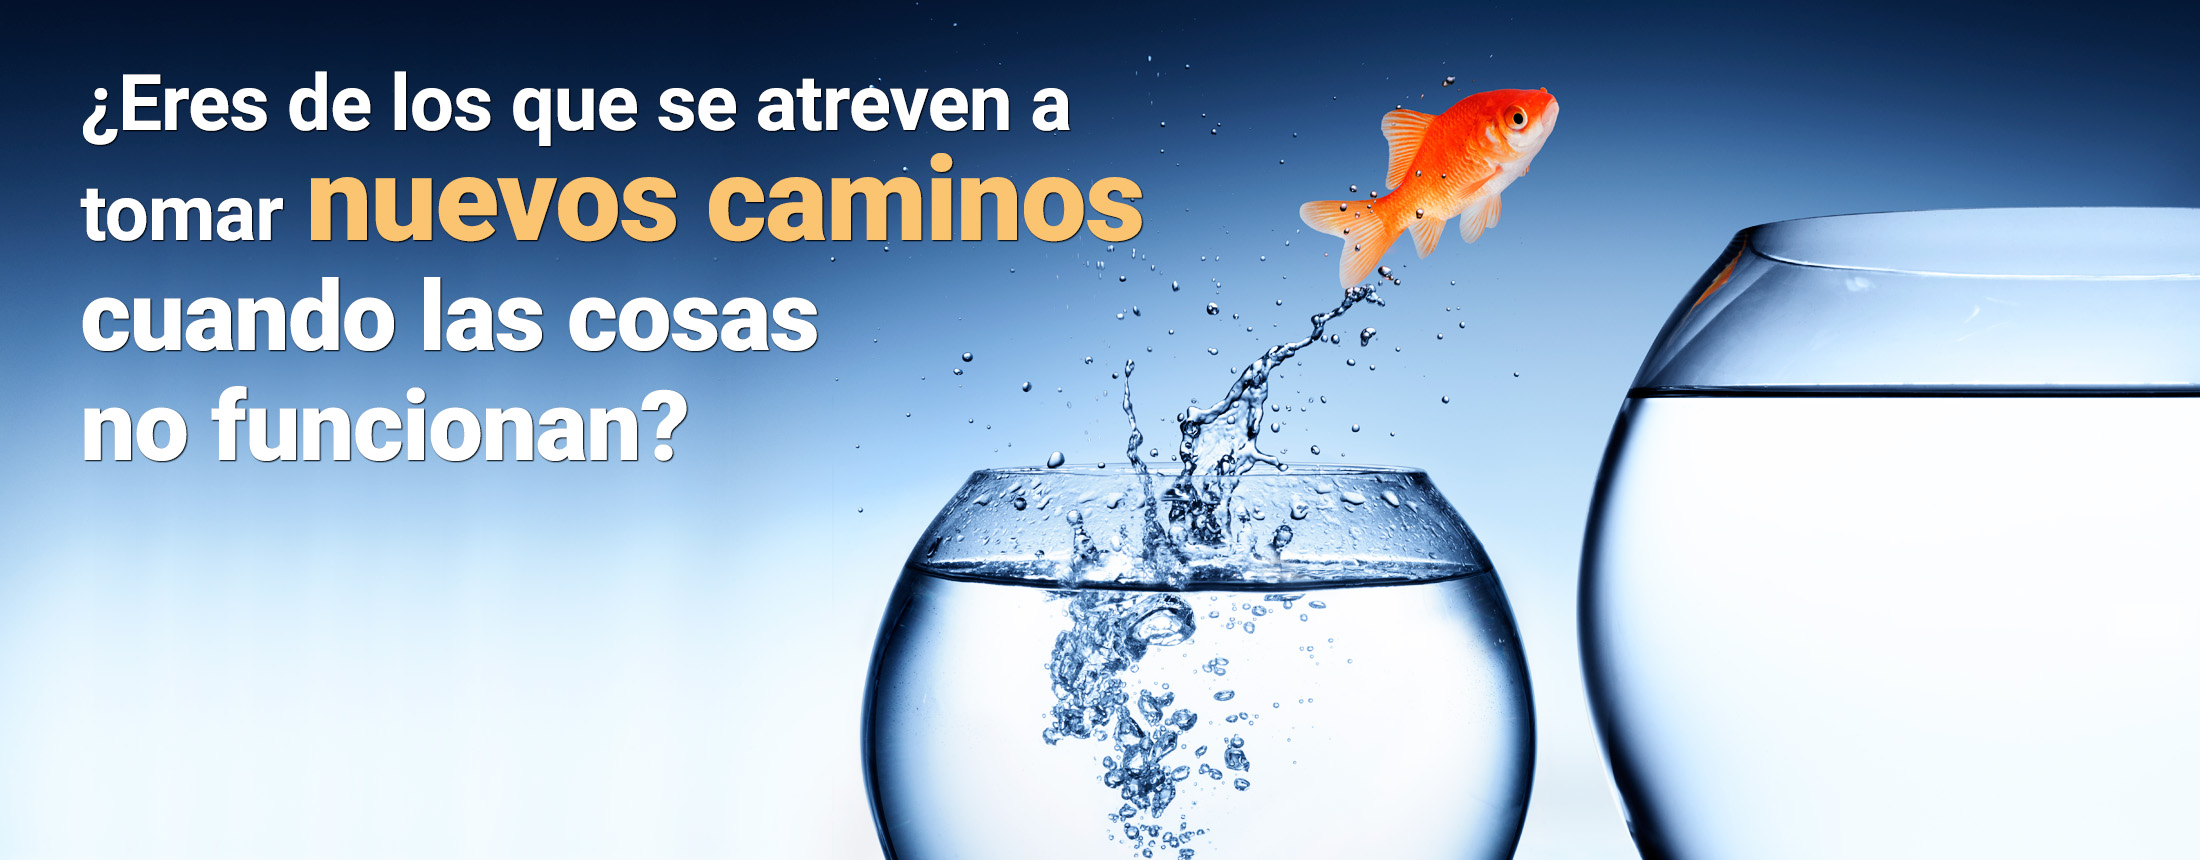 Sinapsis Marketing & Sales Consulting - Juntos Logramos tu Crecimiento Rentable